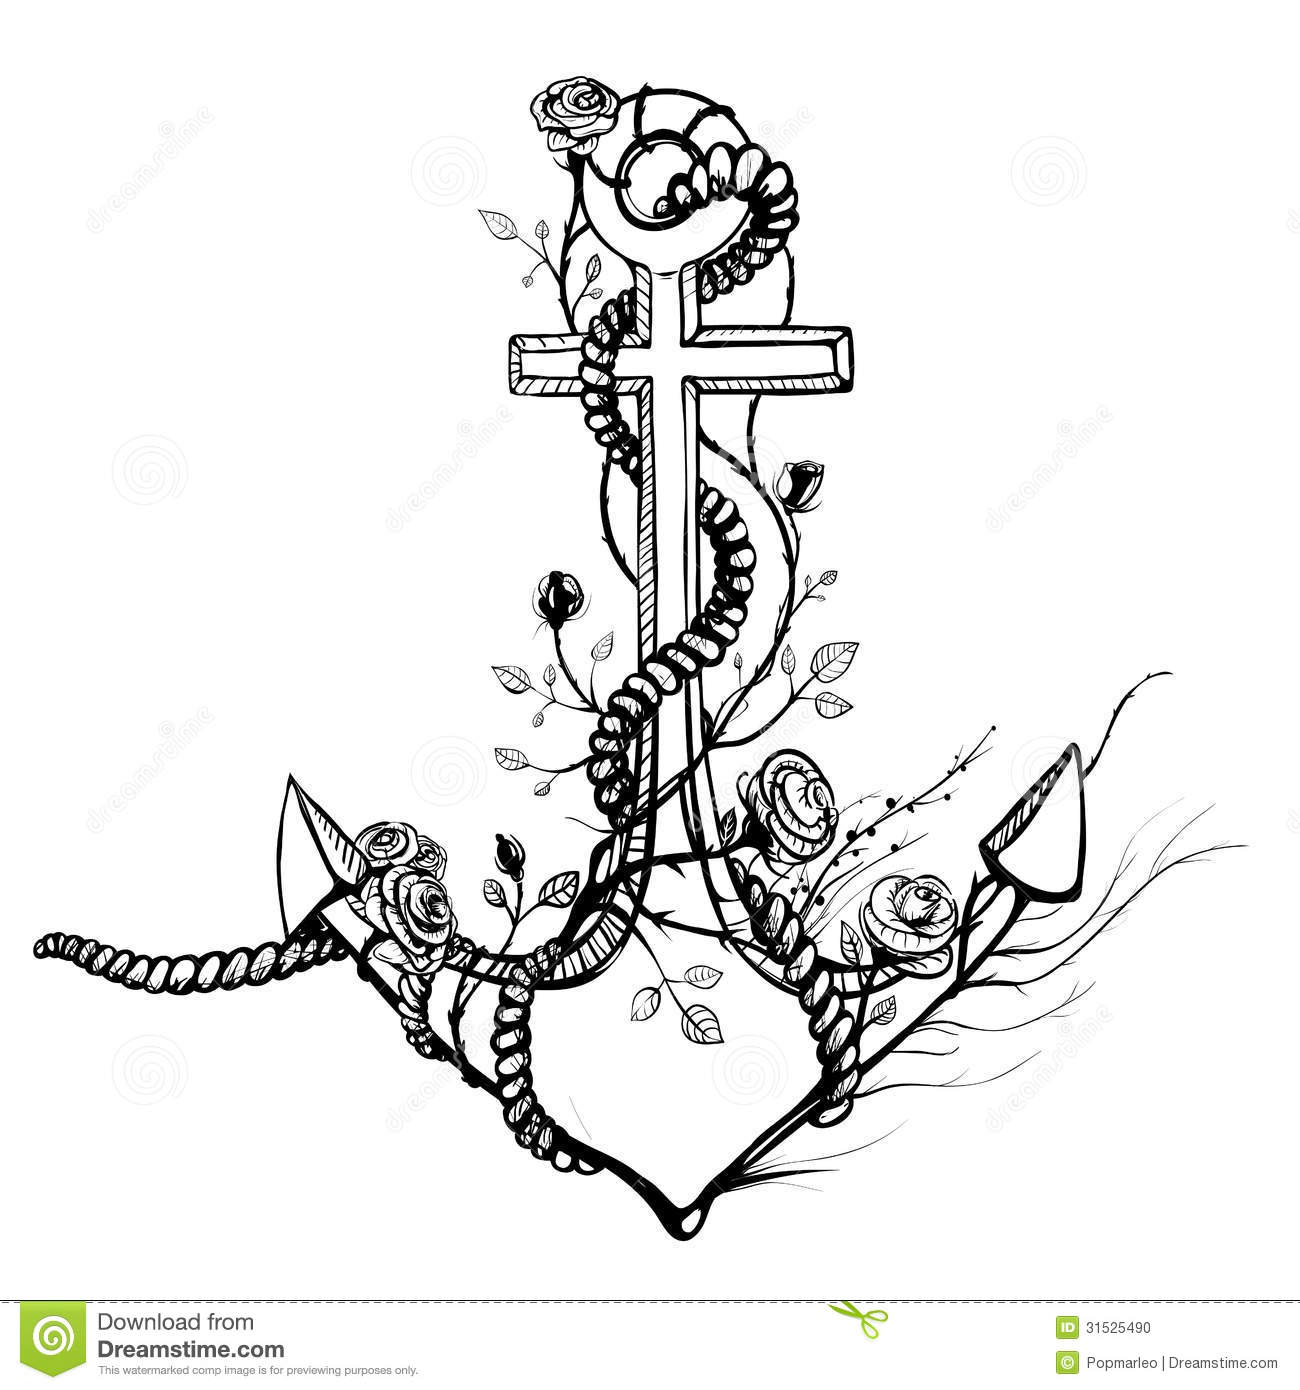 Romantic Old Anchor With Roses Black Ink Stock Vector ...Old Black And White Romantic Photos